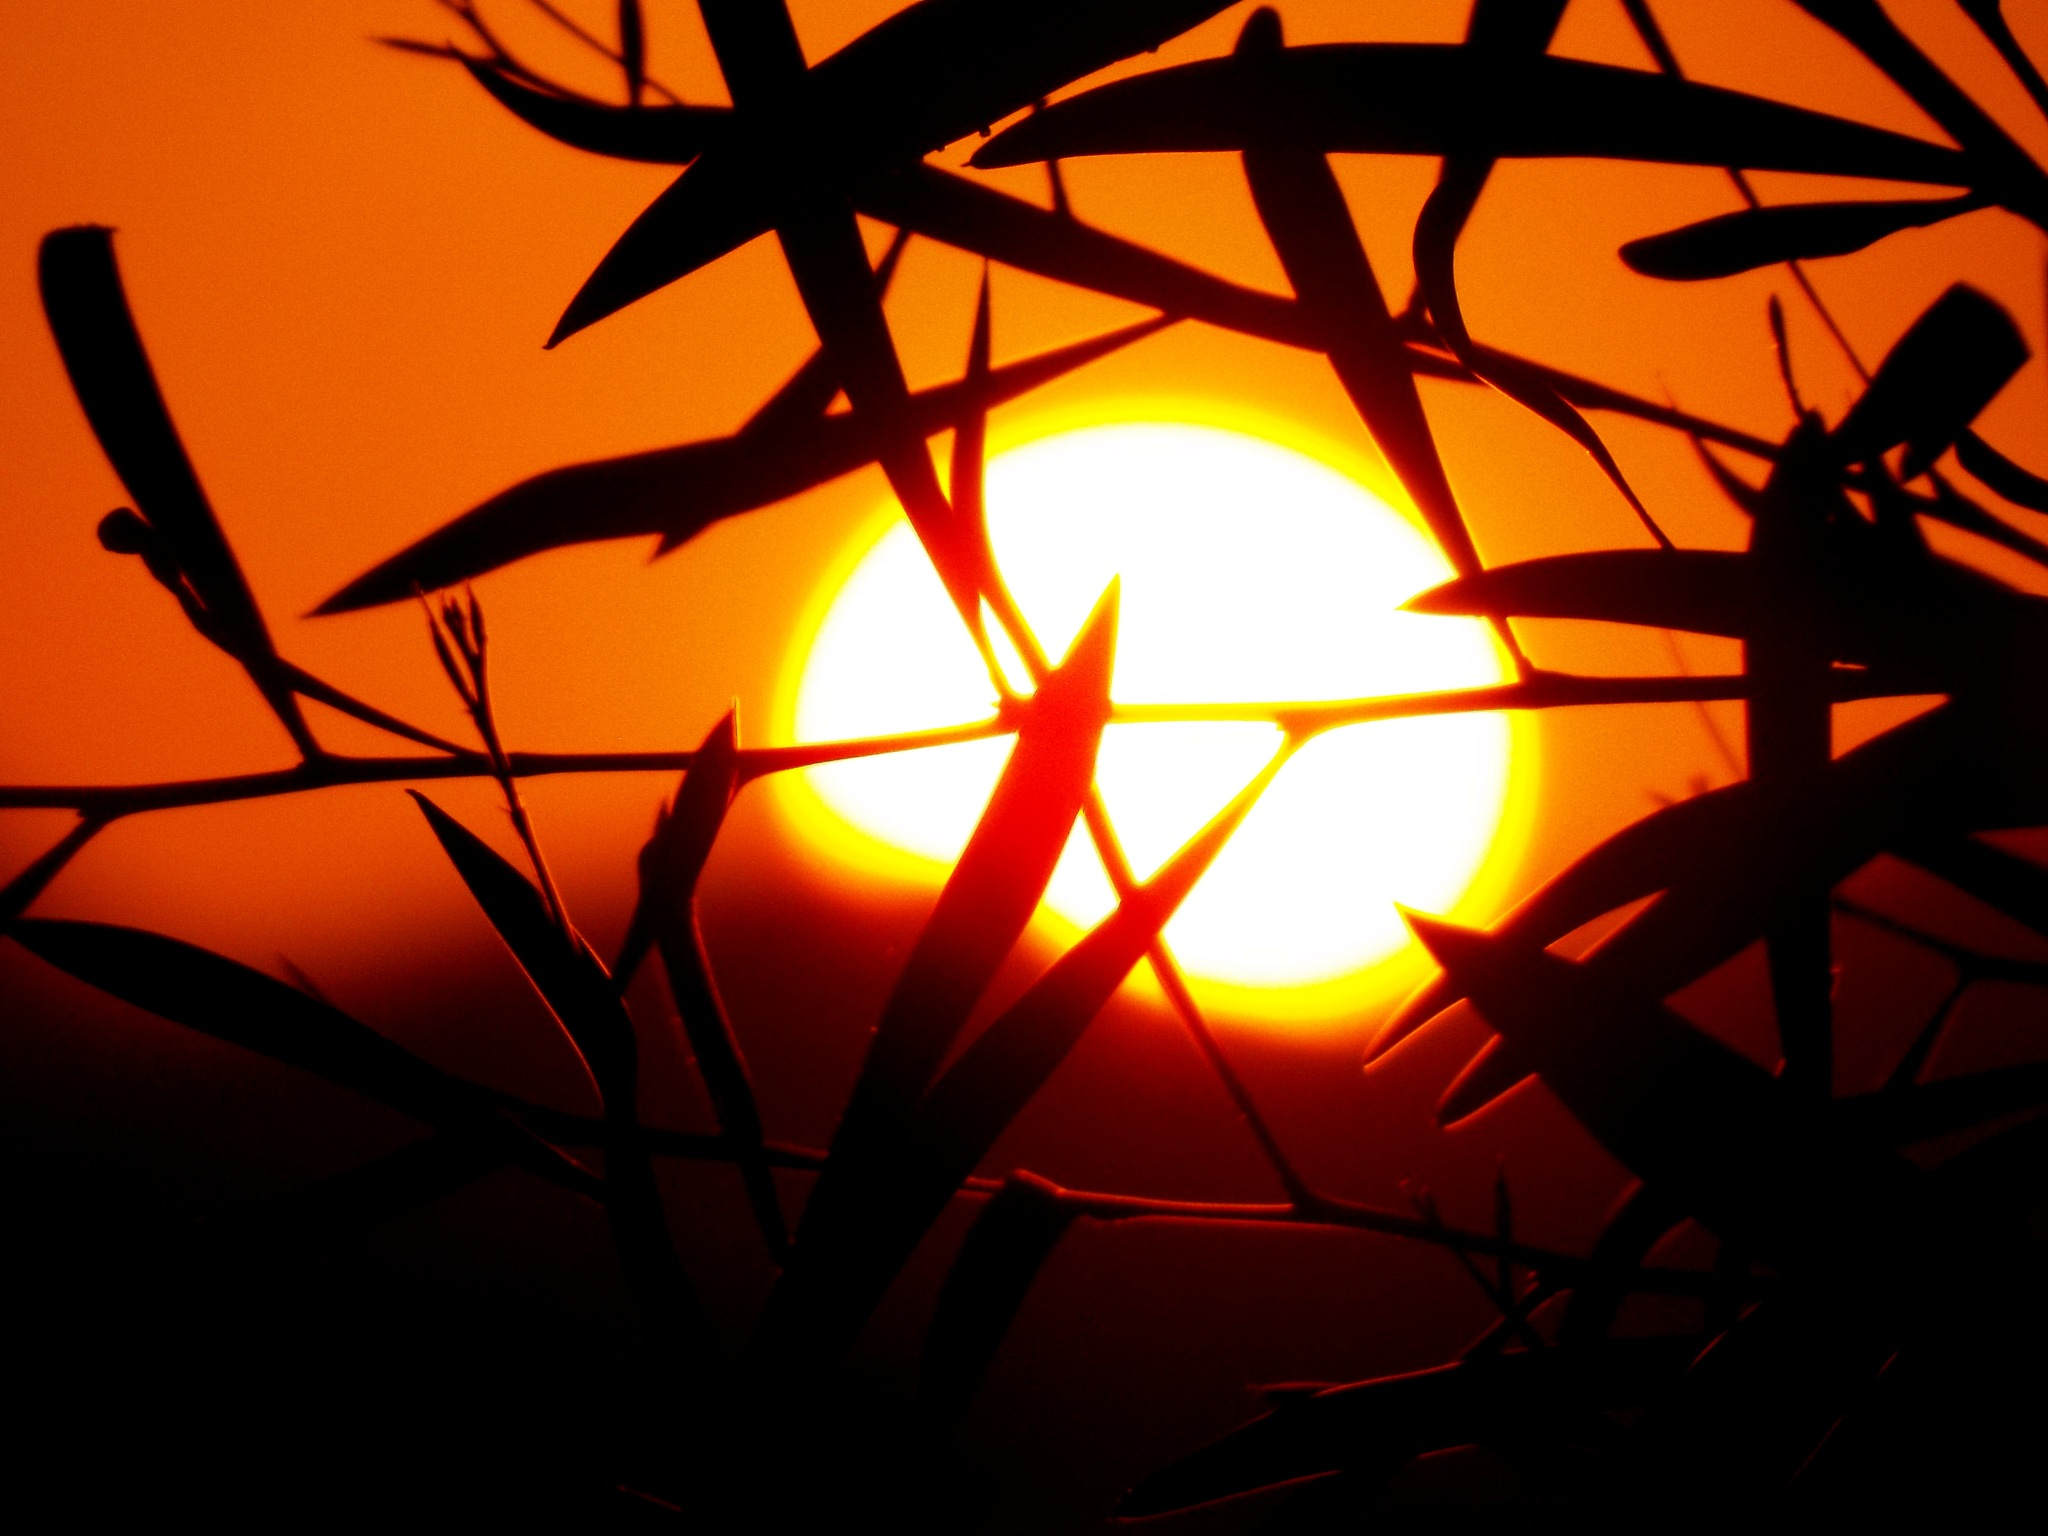 THE SUN, BEHIND THE BUSHES by Akin Saner